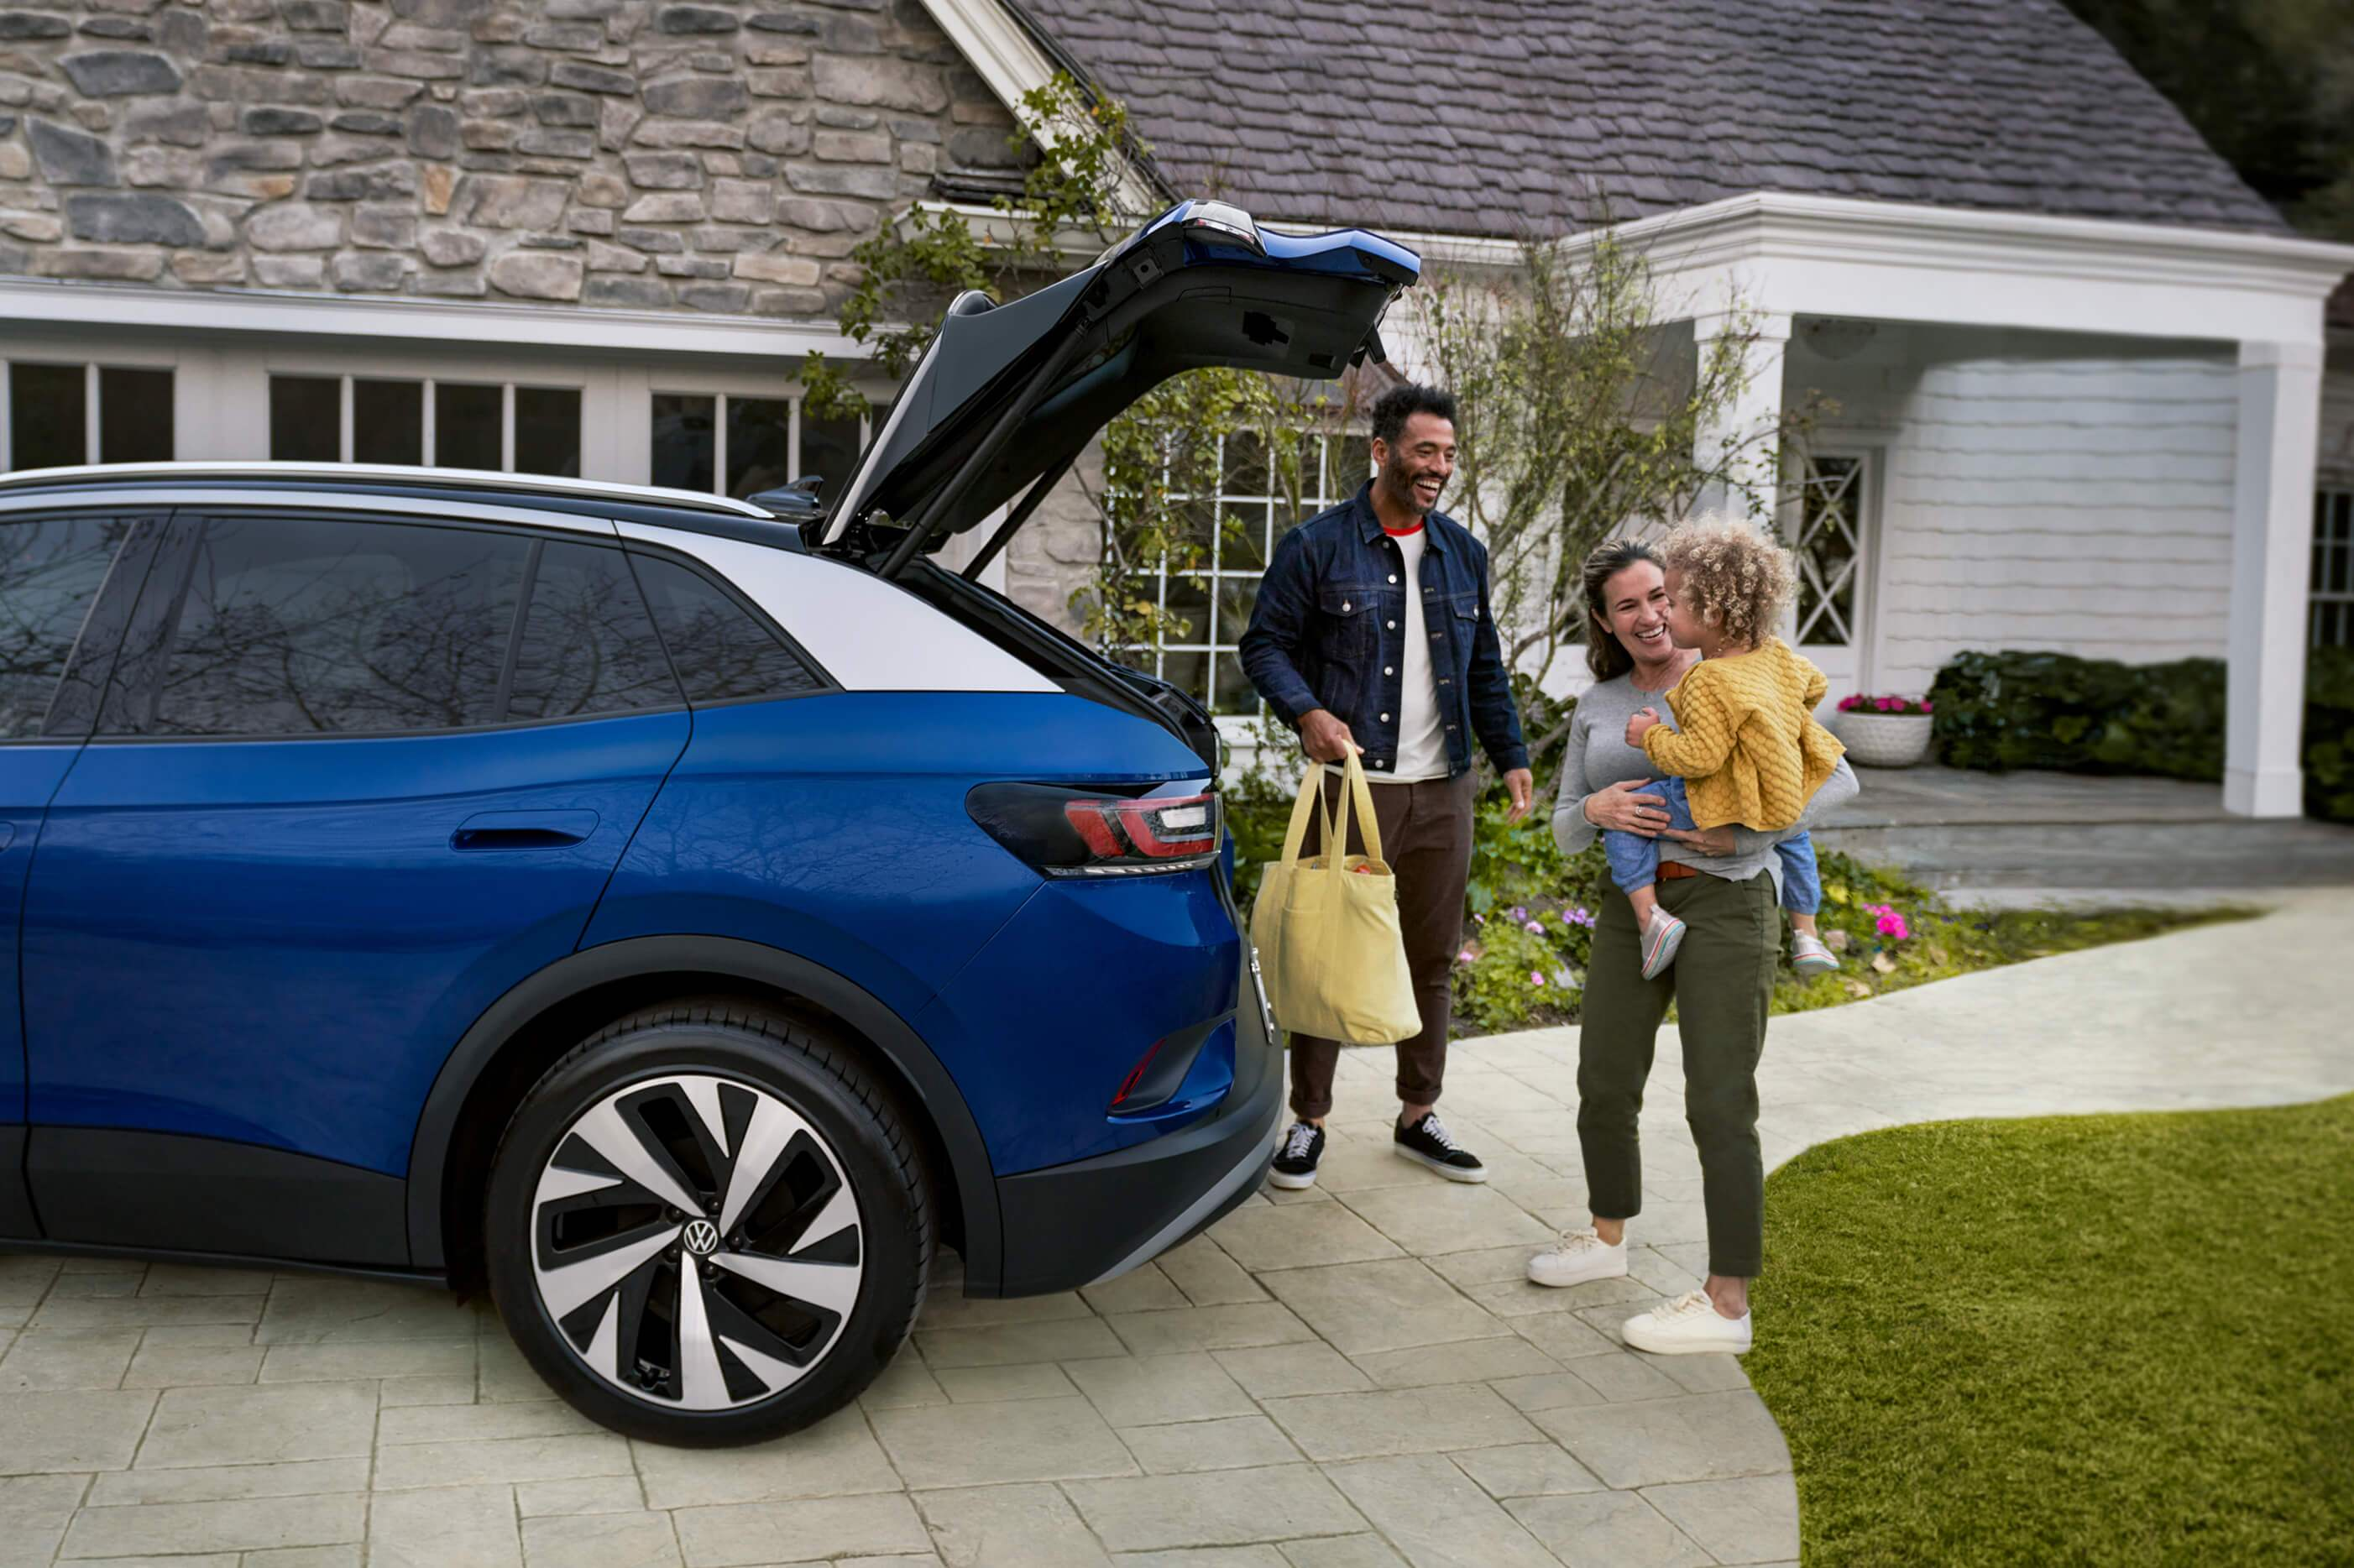 A young family loads a bag into the cargo area of an ID.4, shown in Dusk Blue Metallic parked in a residential driveway.